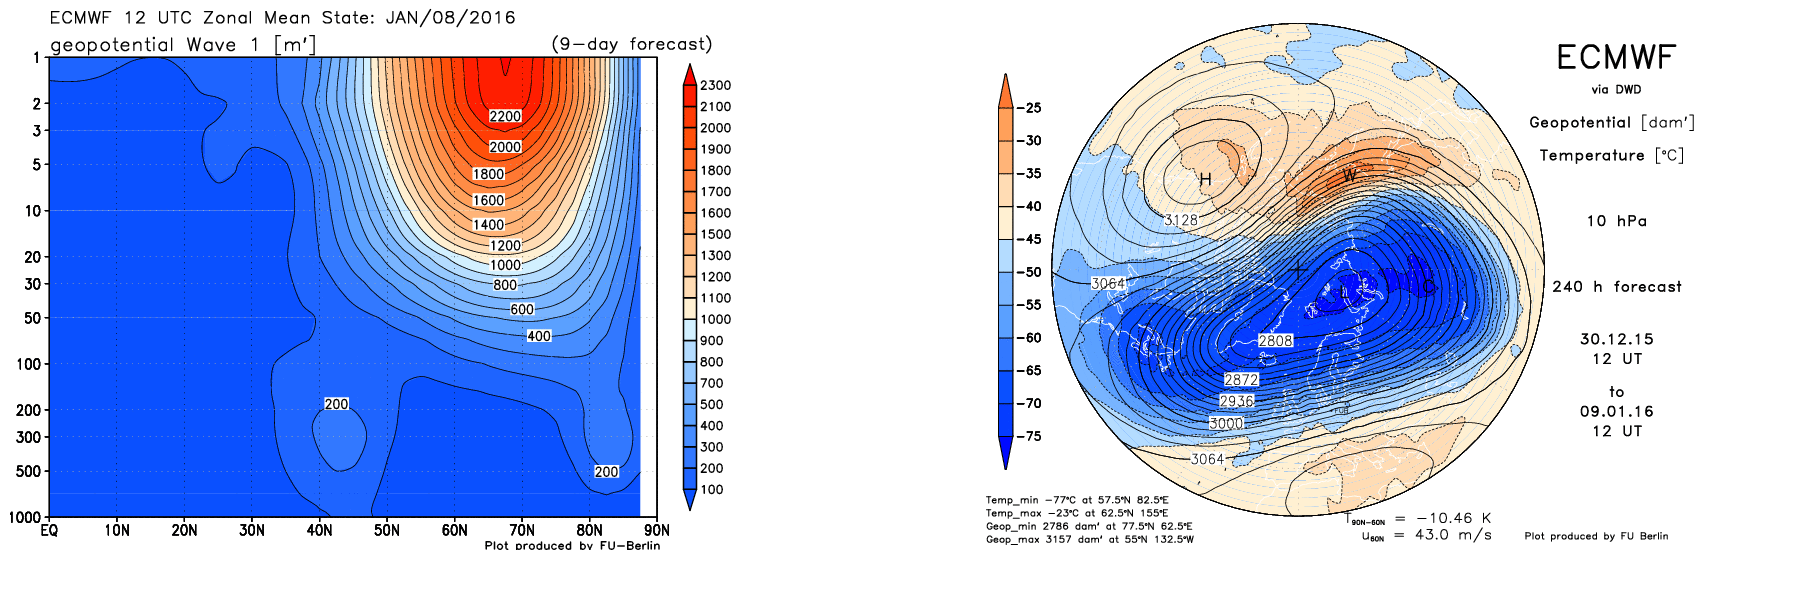 ECMWF showing strong wave 1 image cause a maybe PV displacement by day 10